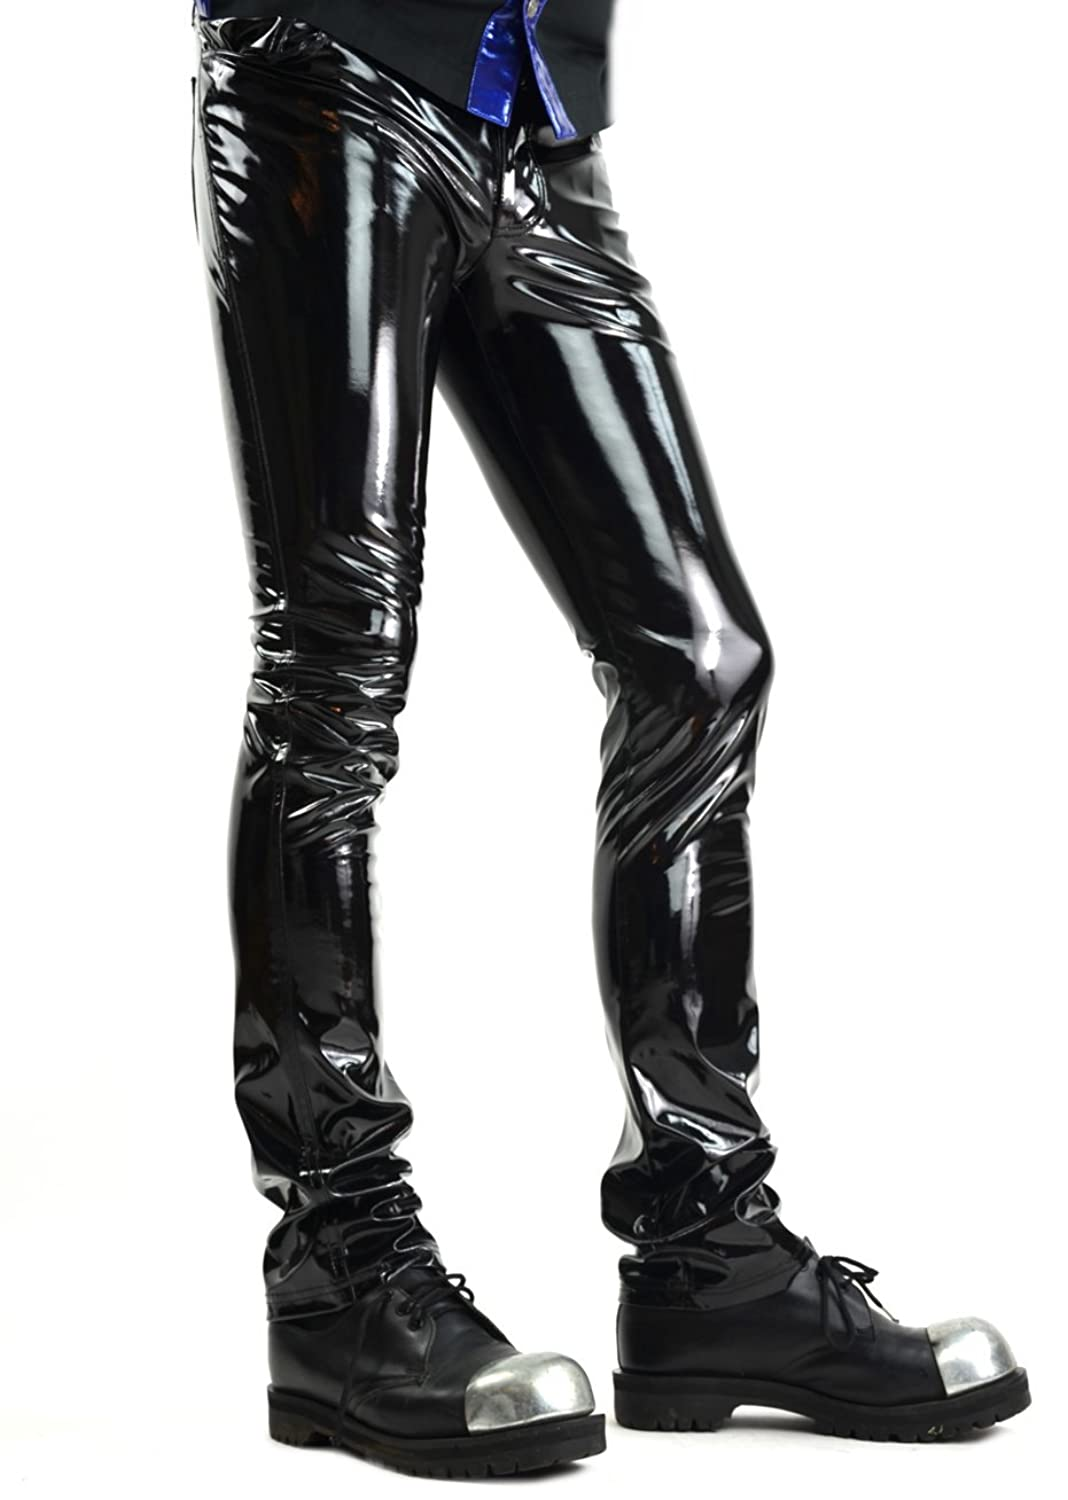 24HRS by Lip Service Gothic Punk Rocker Cyber Goth Black Vinyl PVC Jeans Pants